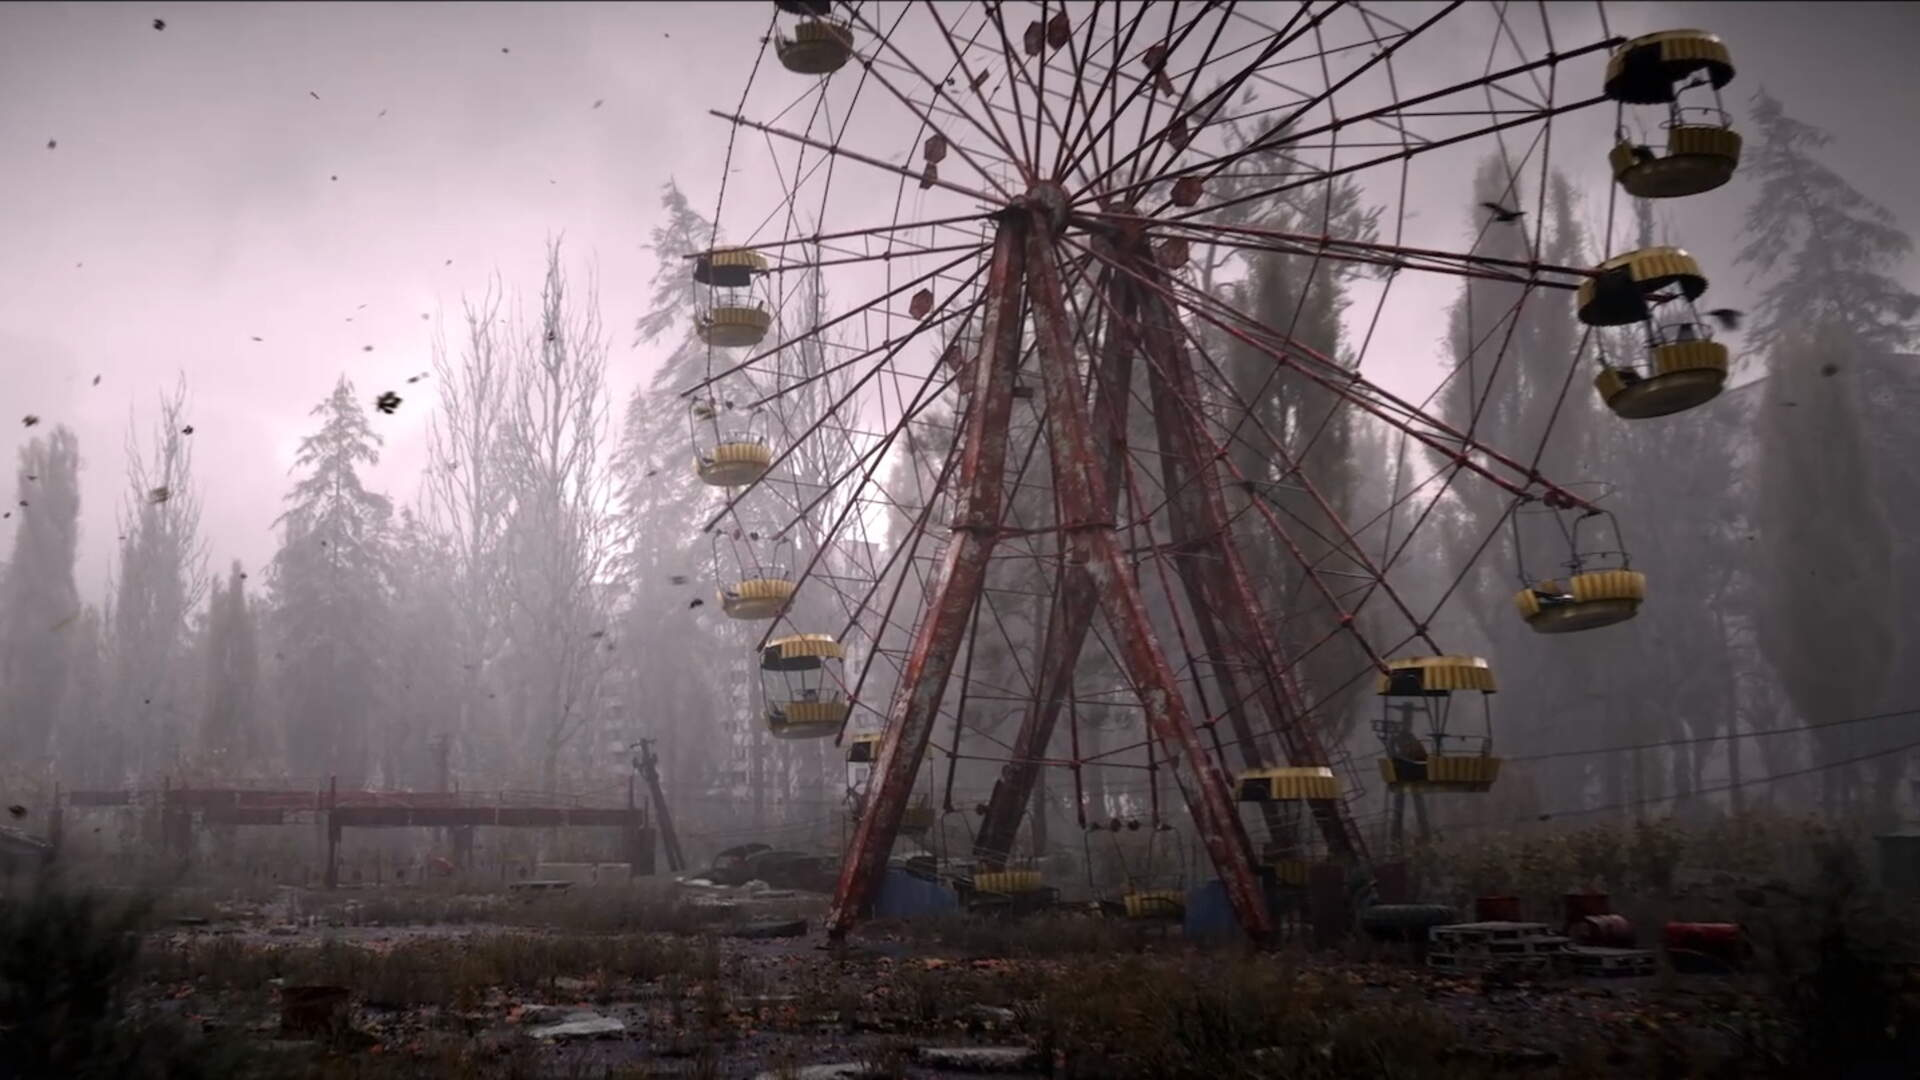 S.T.A.L.K.E.R. 2 Resurfaces With a Creepy New Trailer